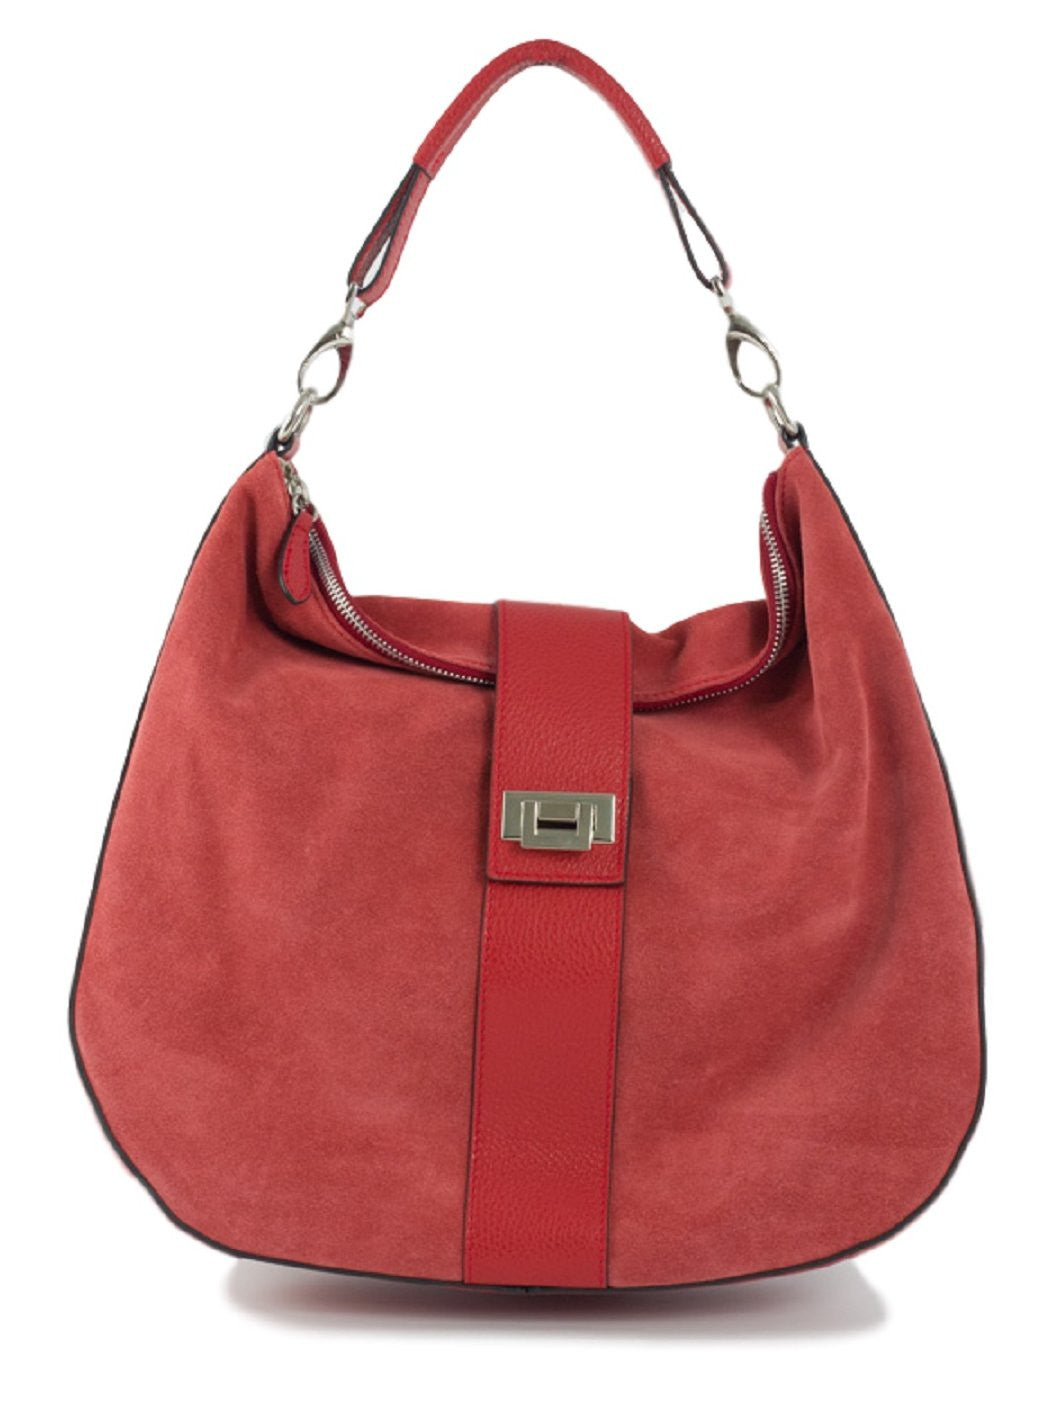 red suede leather handbag